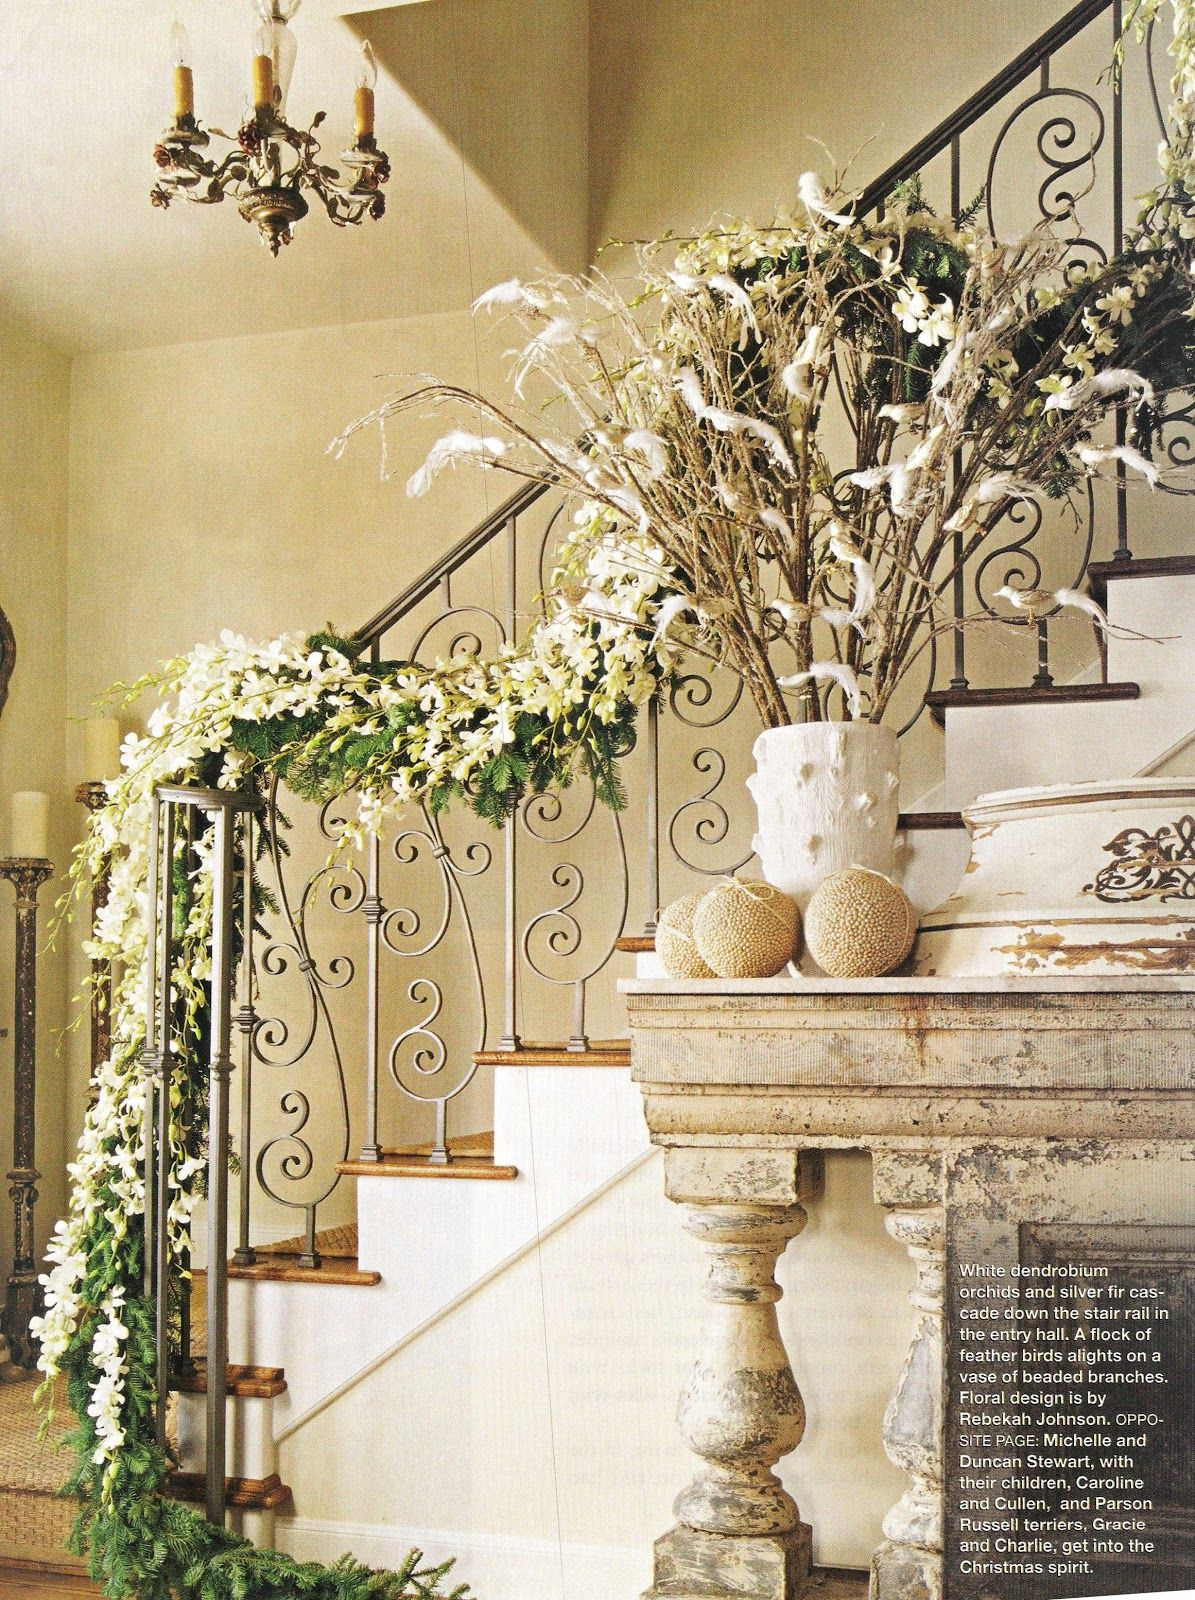 Christmas Staircase Decorations | White dendrobium orchids and ...